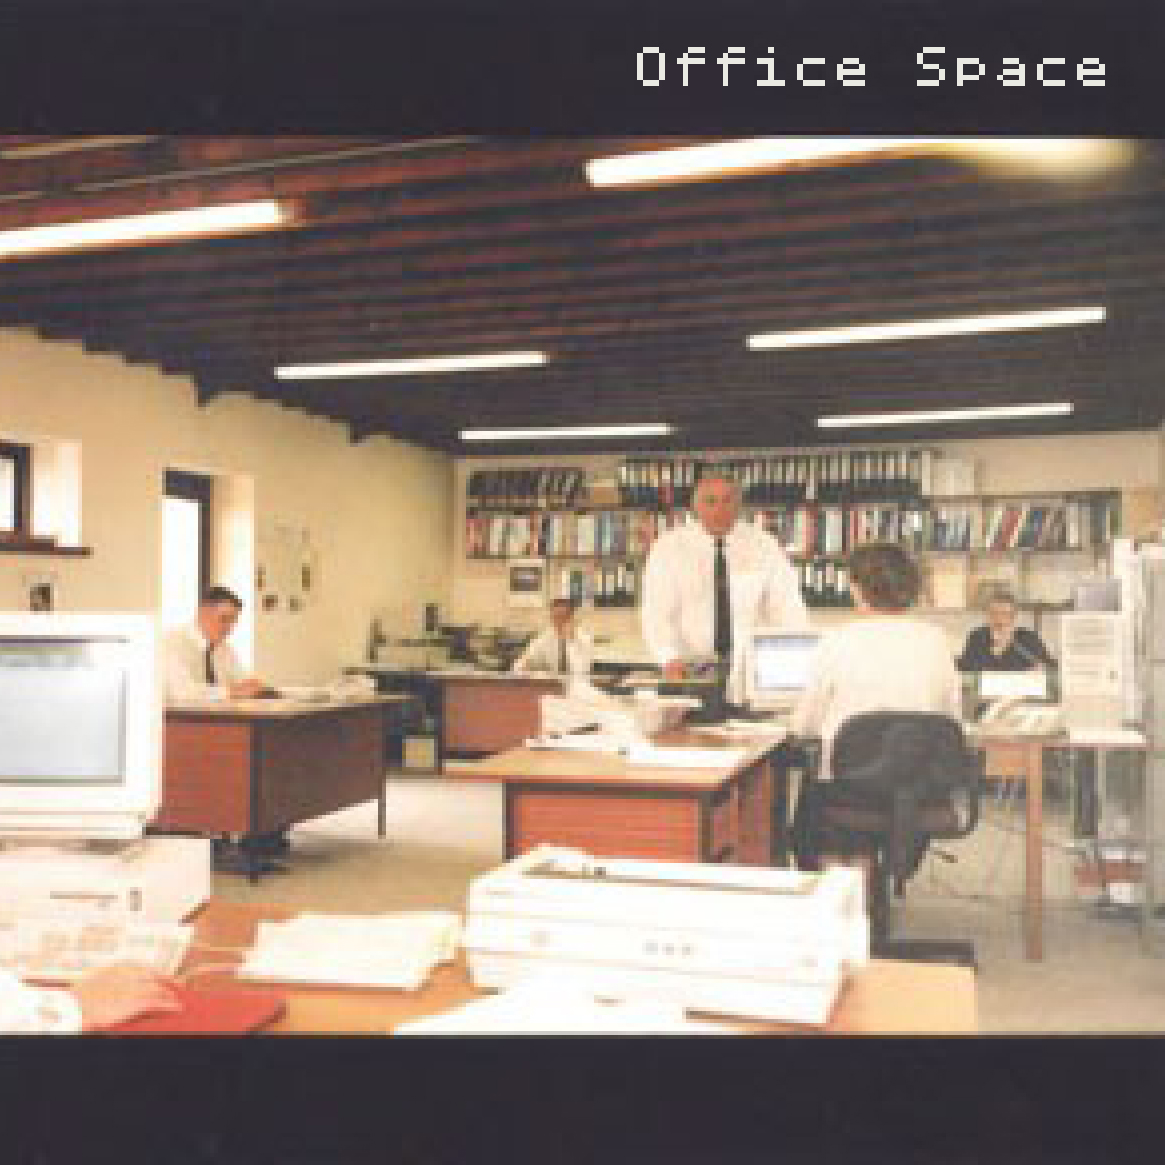 storage and office space. Office Space Storage And